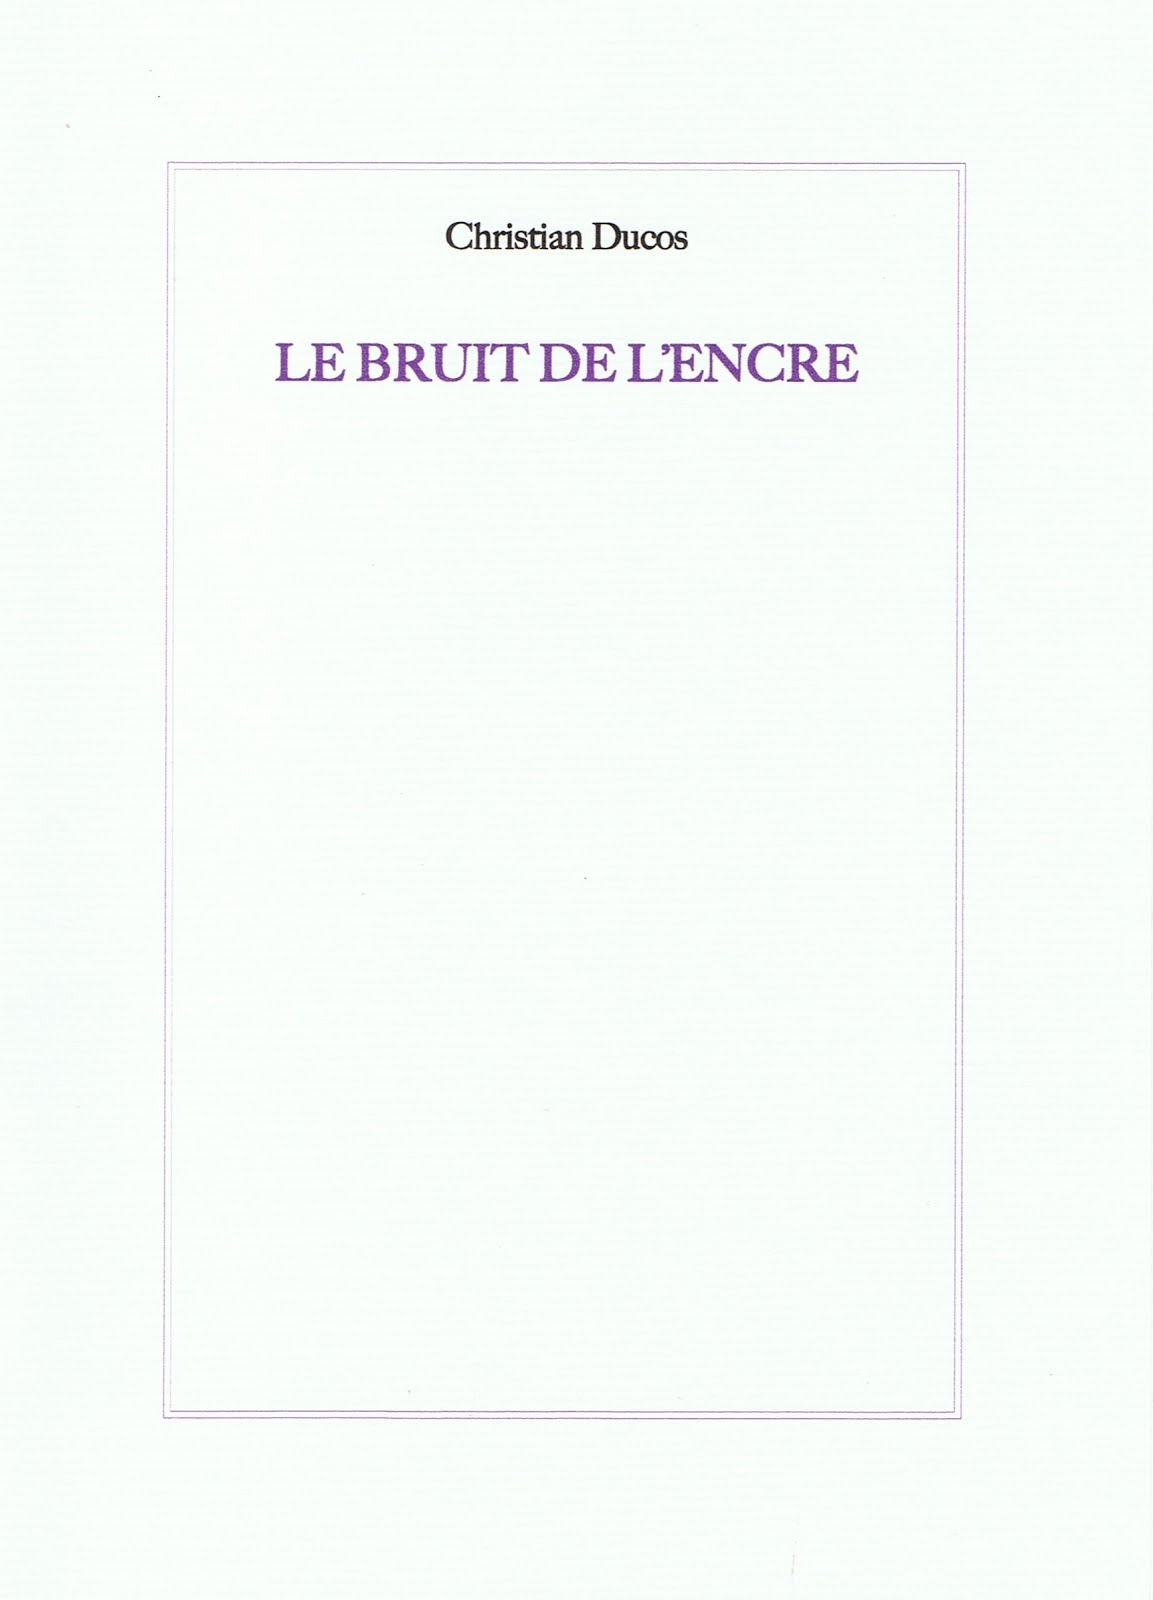 Christian DUCOS, LE BRUIT DE L'ENCRE, COLLECTION de L'UMBO, 2015